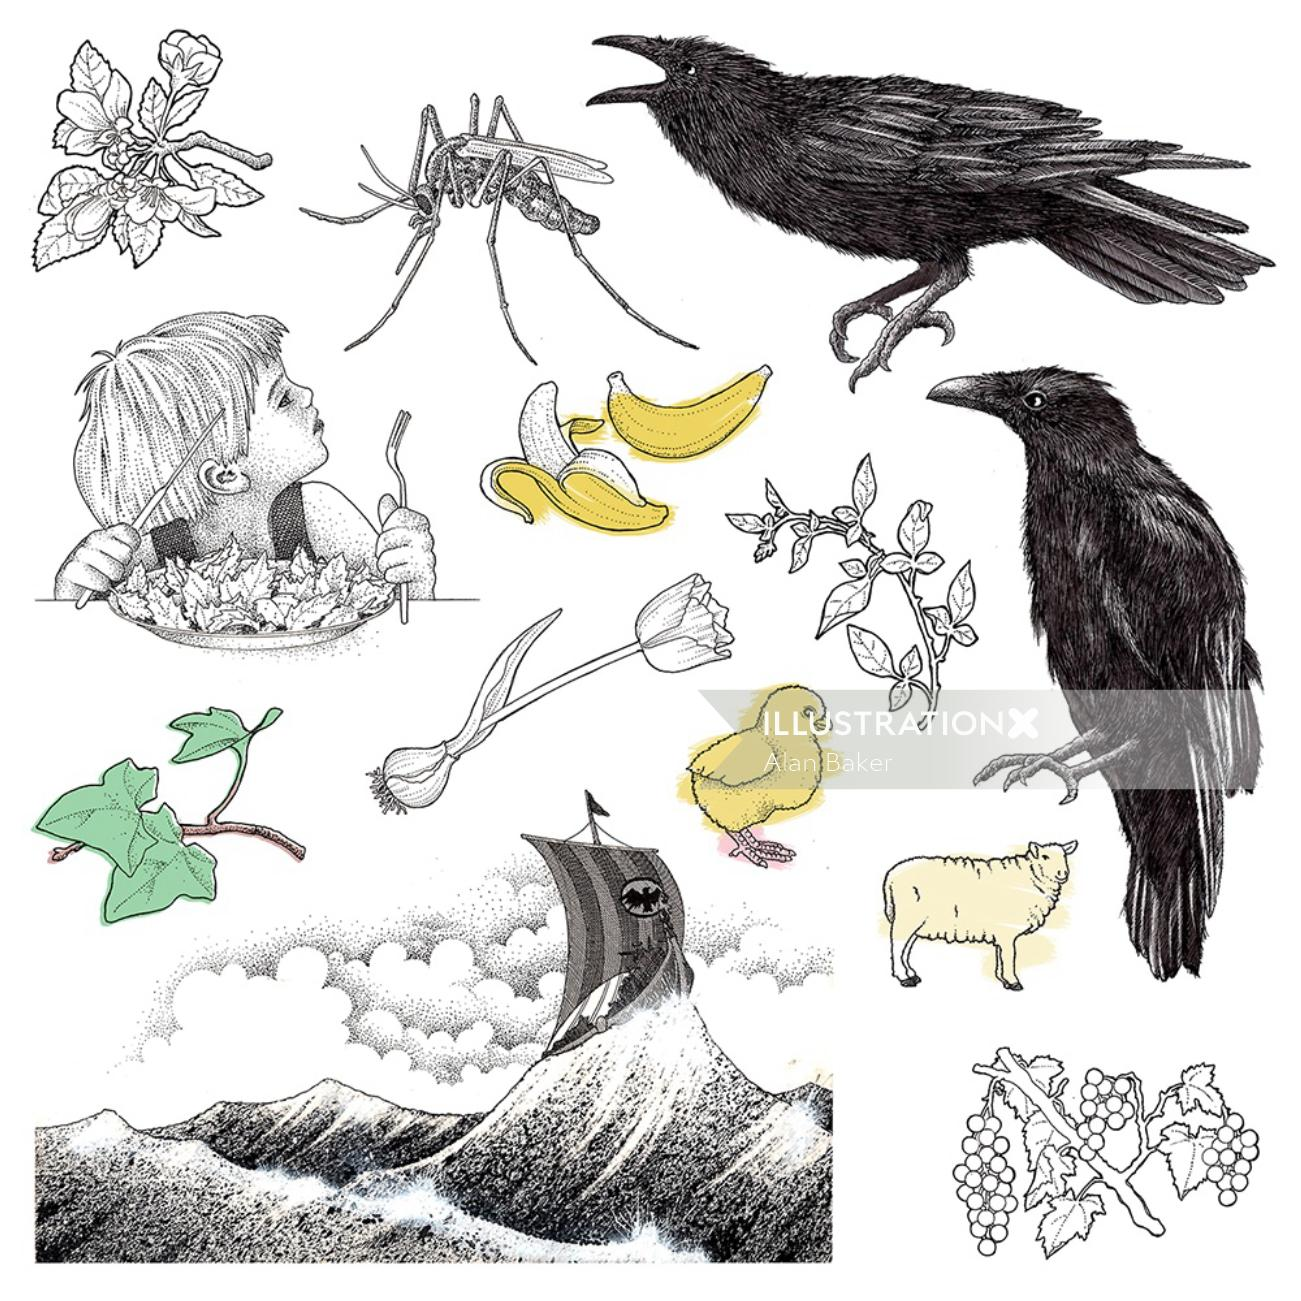 An illustration of birds and insects